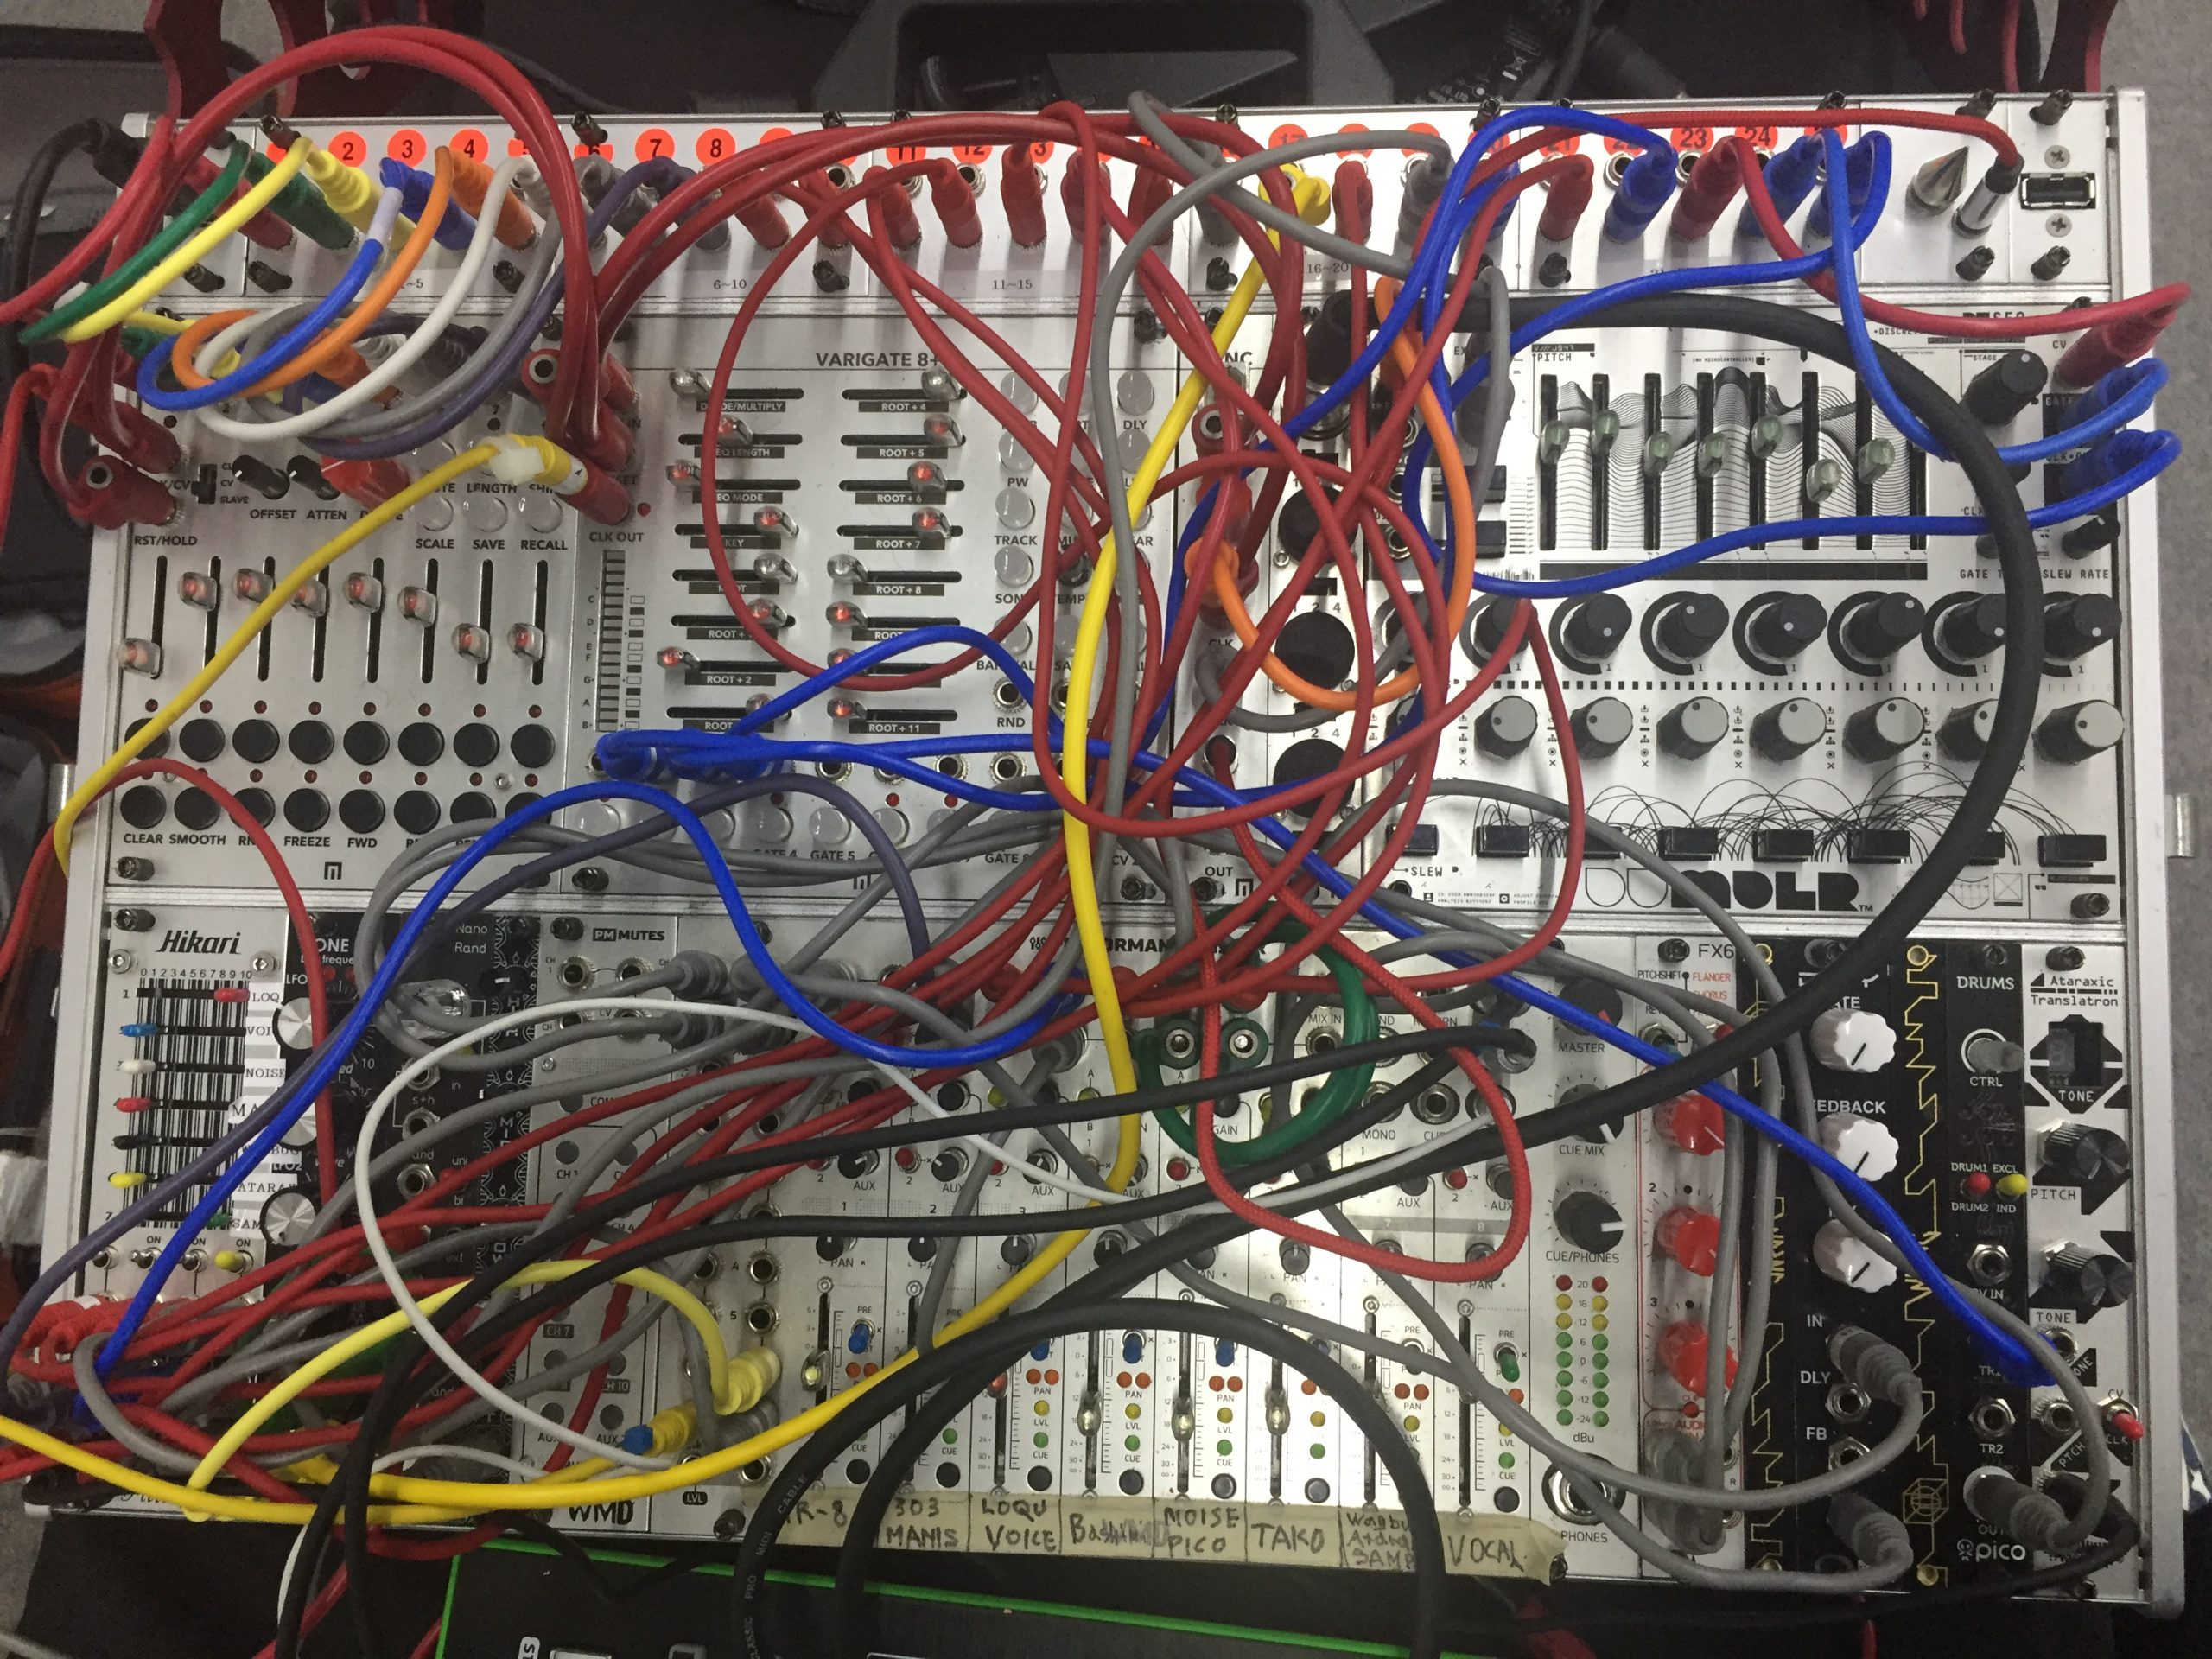 Only Galcid knows, where all those cables go